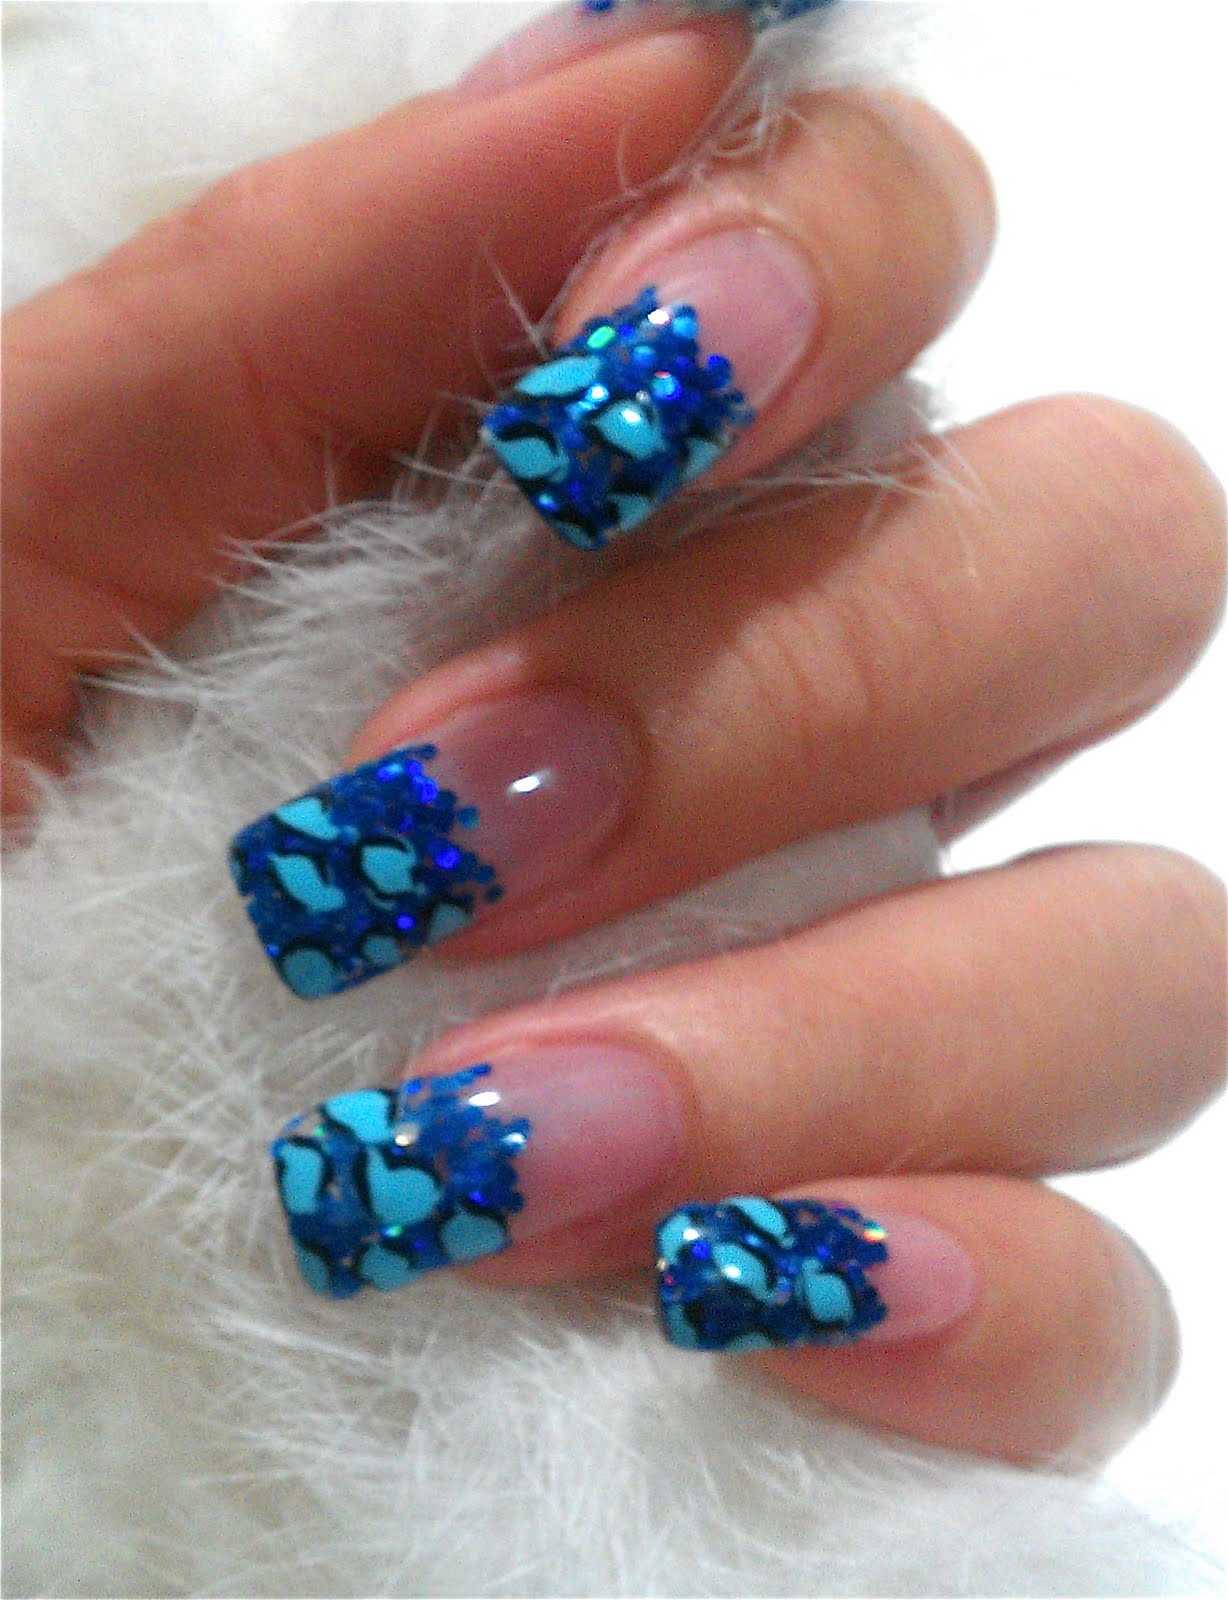 The Clover Beauty Inn: NOTD: Blue Glitter Leopard Print